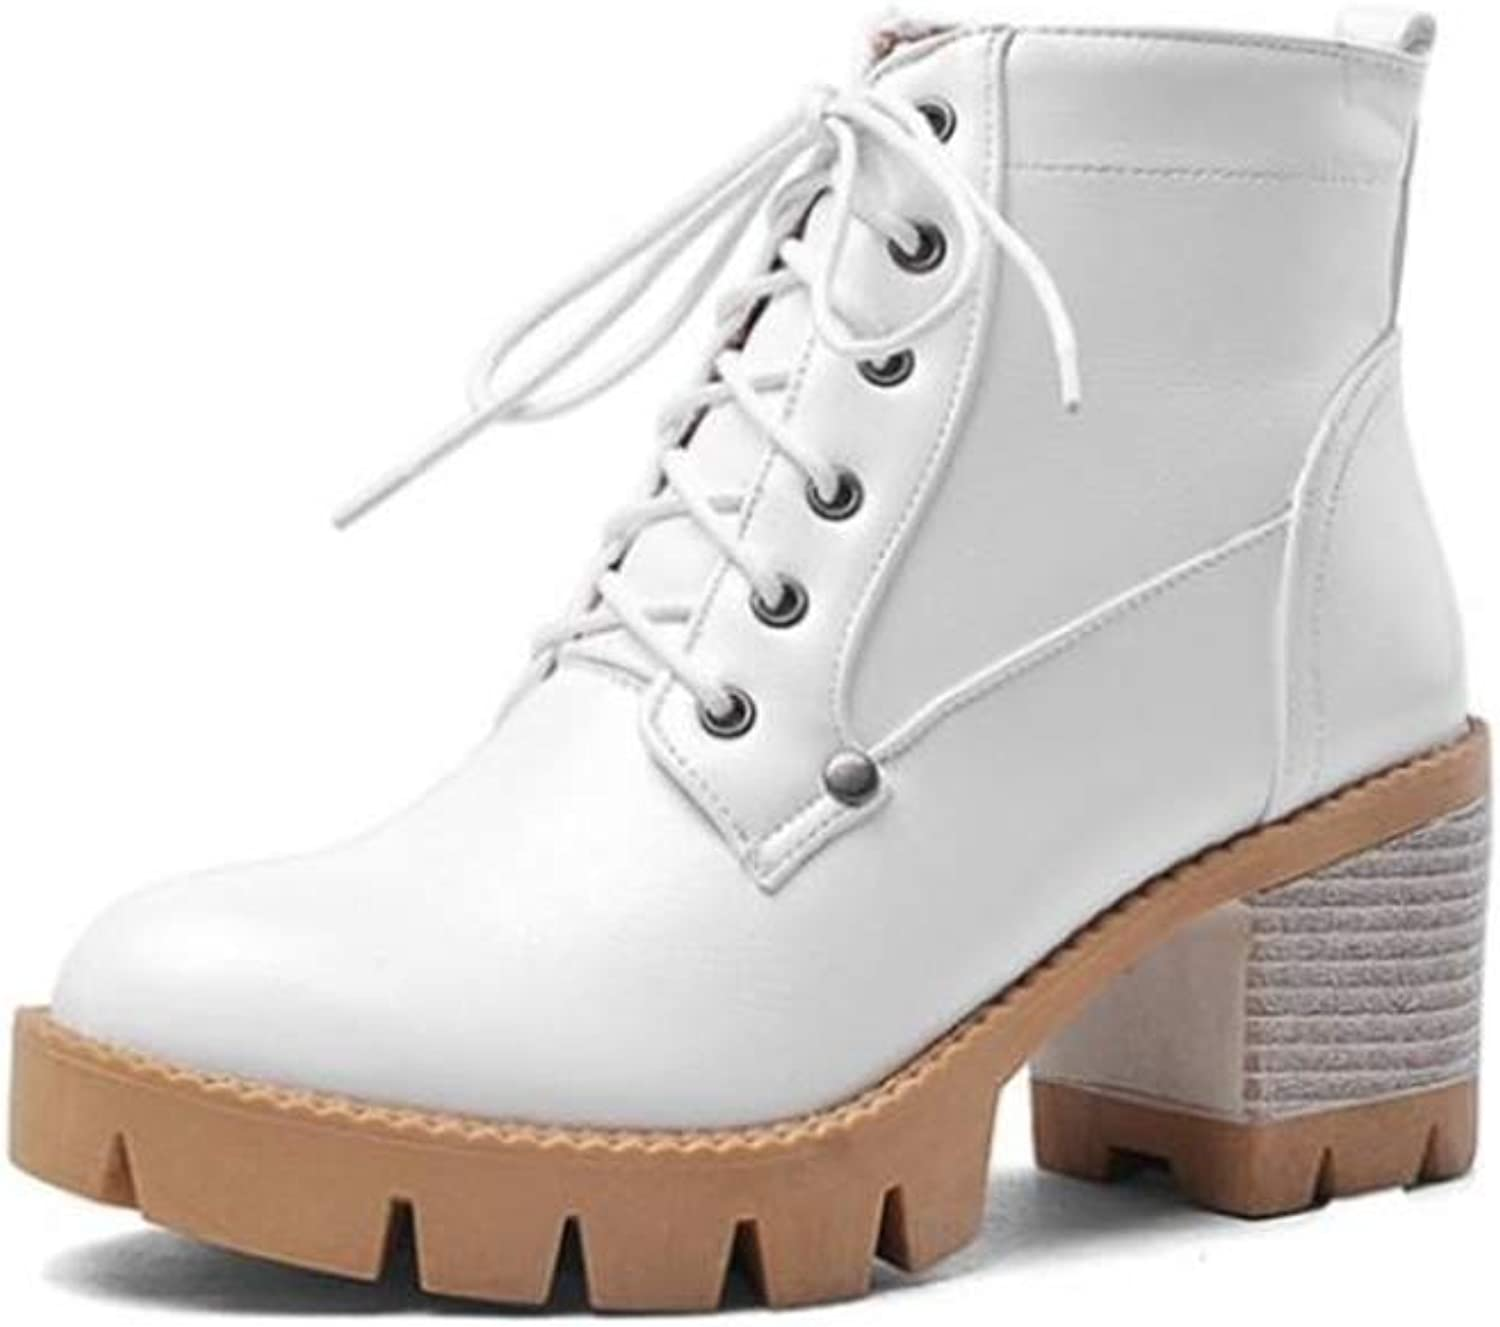 Smart.A Women's Combat Style Lace up Ankle Bootie